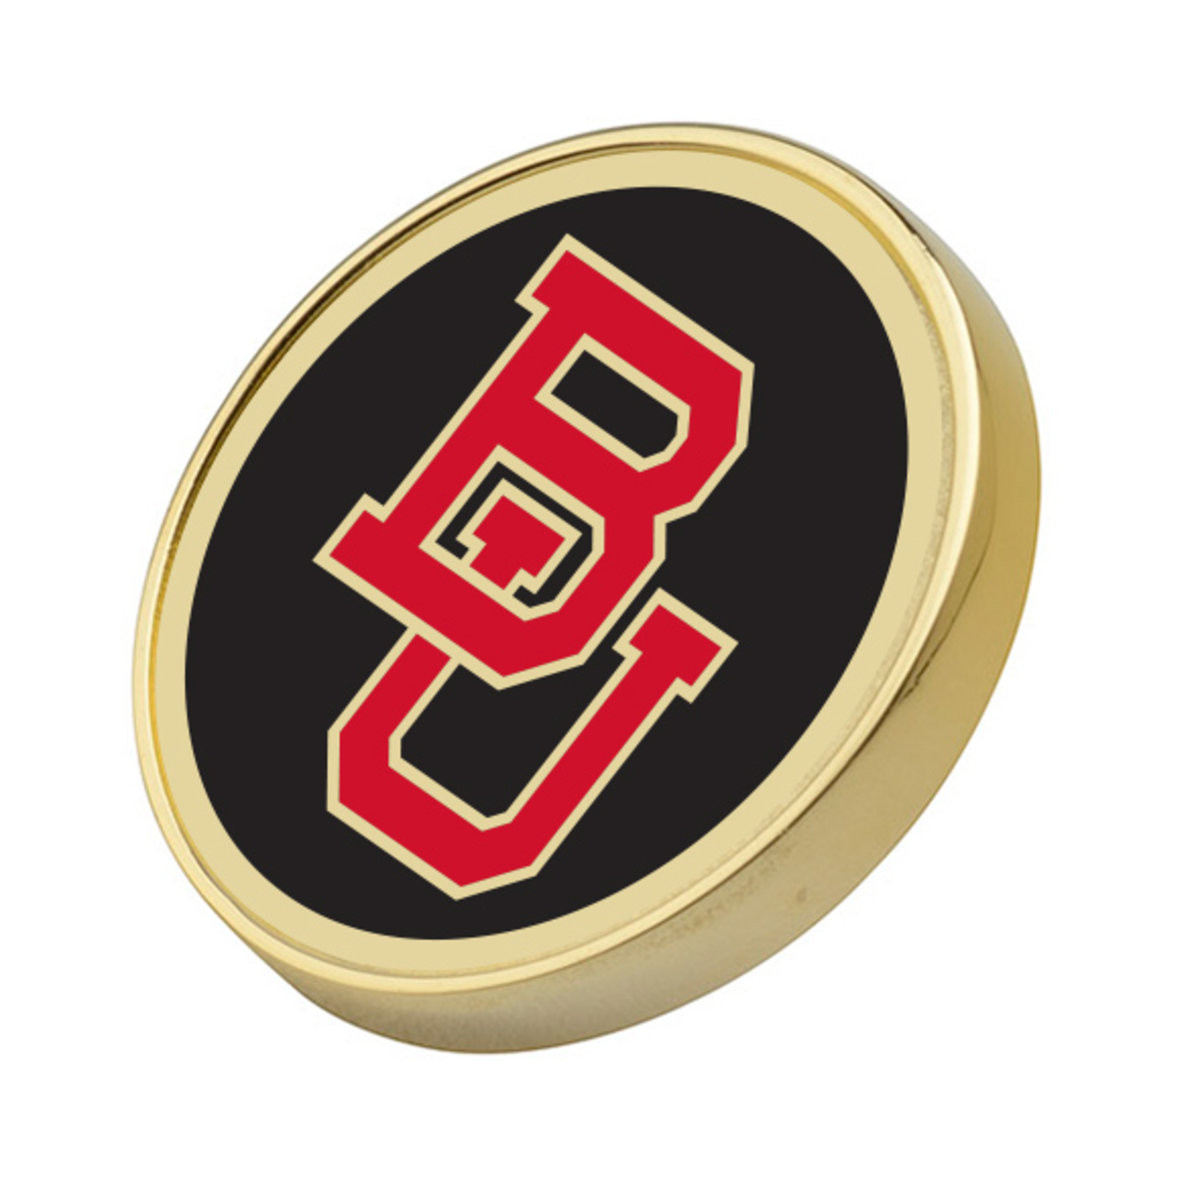 Pins Boton  Boston University Enamel Lapel Pin at M LaHart & Co